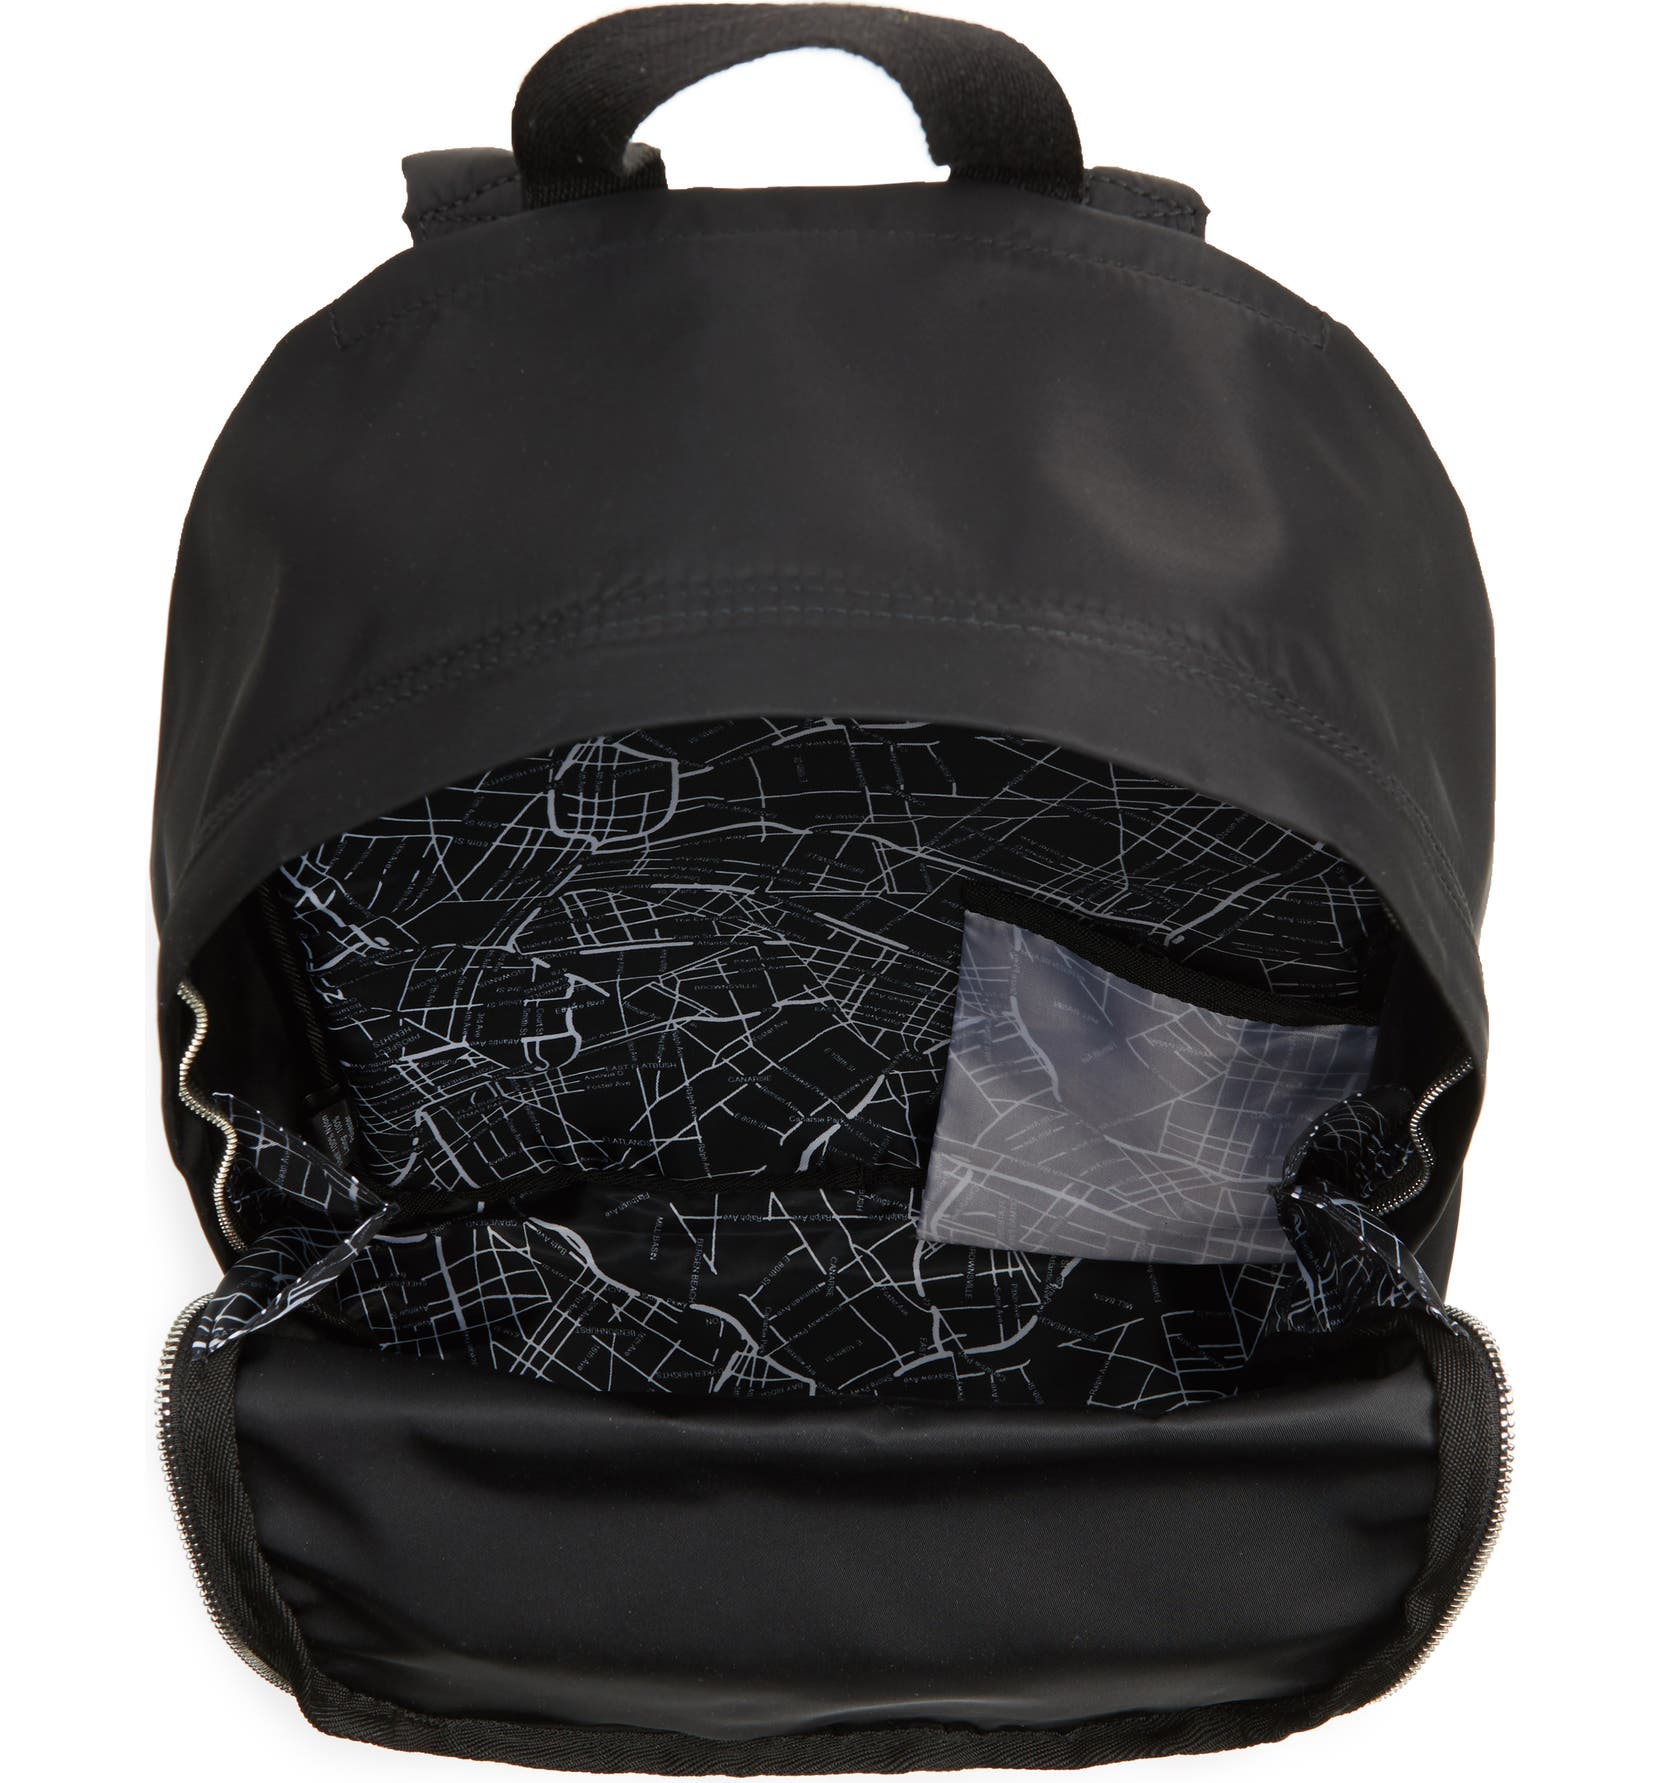 43f633a49fc8 STATE Bags The Heights Lorimer Backpack